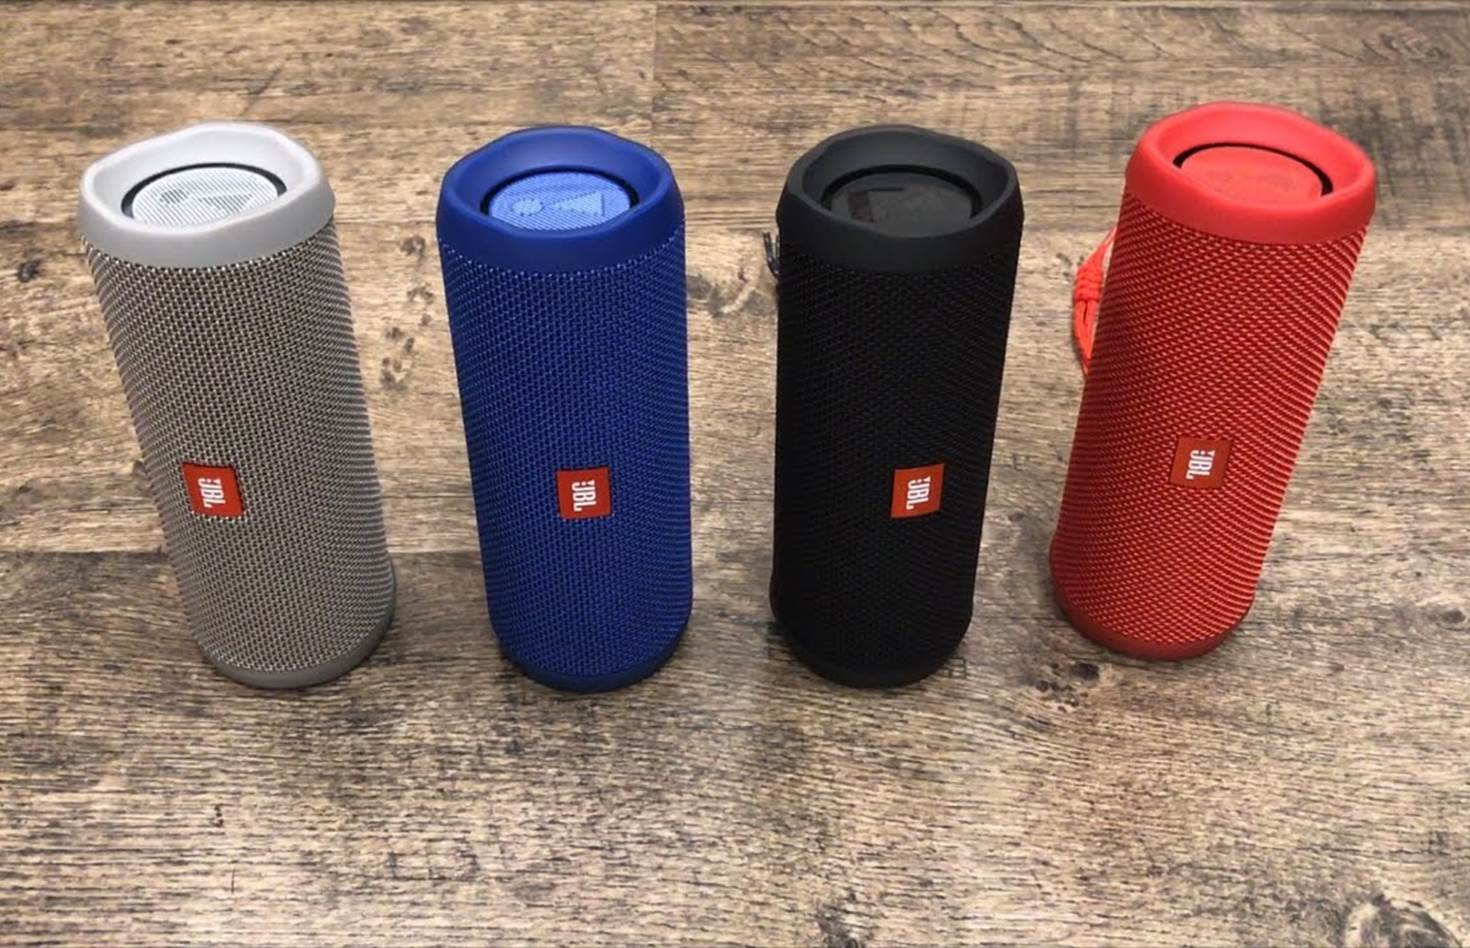 Best Sounding Bluetooth Speakers in 2019: Which has the best sound?